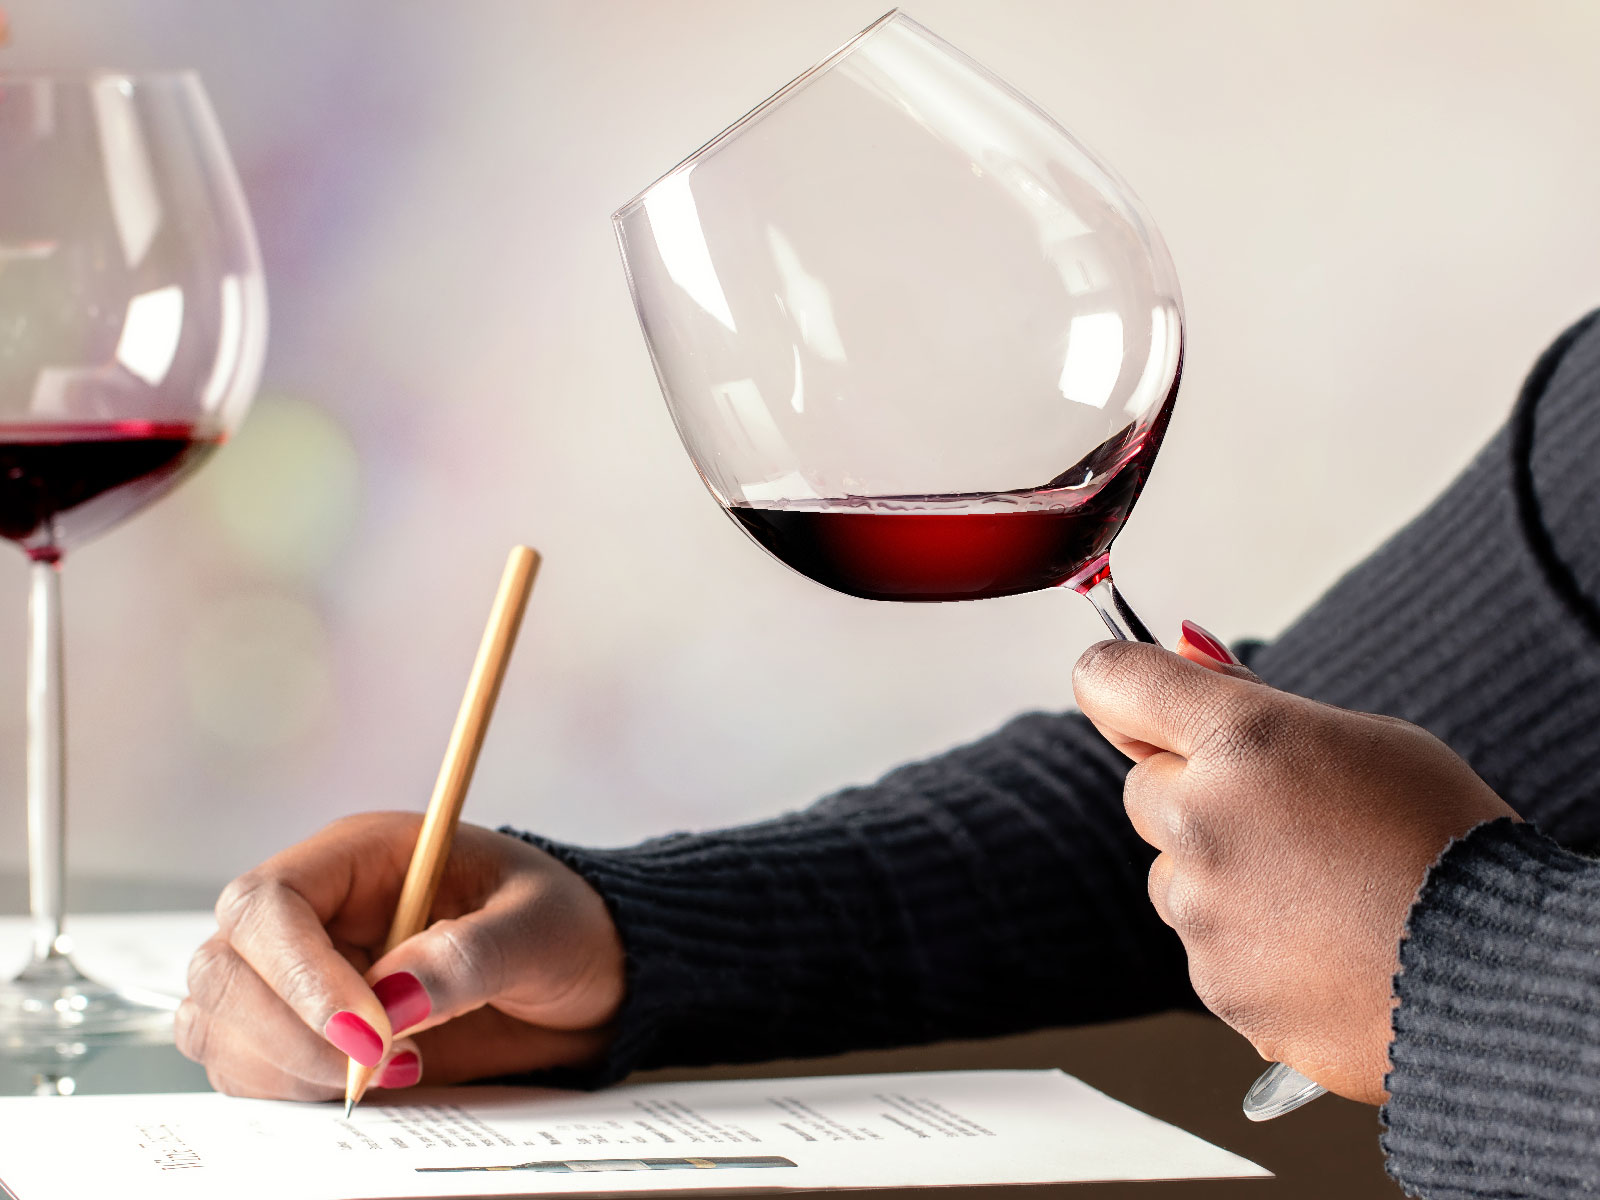 A 24-Year-Old Just Became Japan's First Master Sommelier